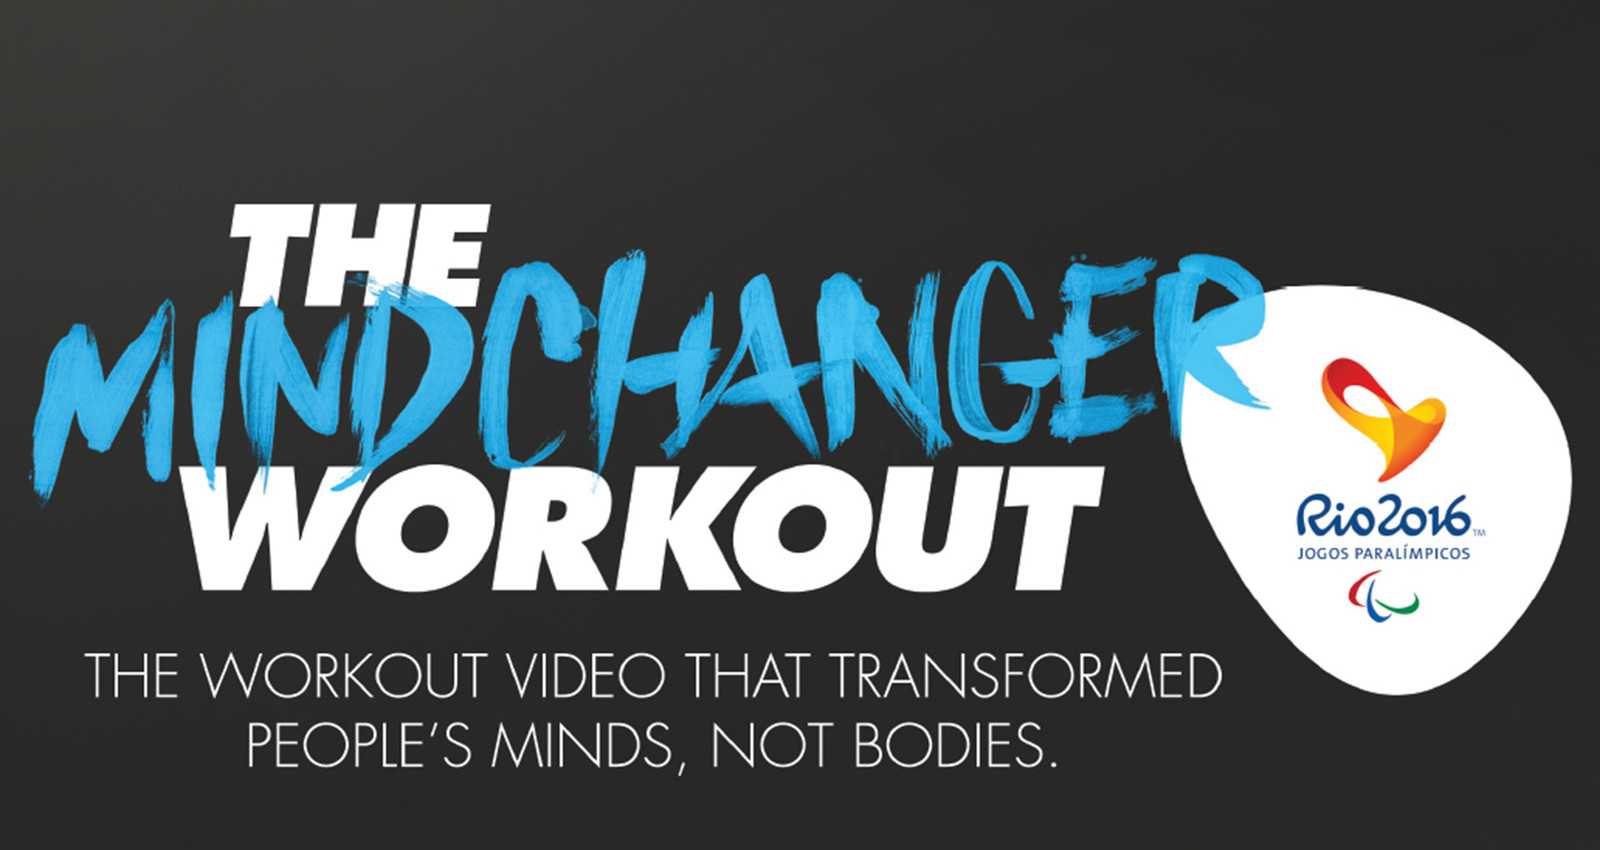 The Mindchanger Workout